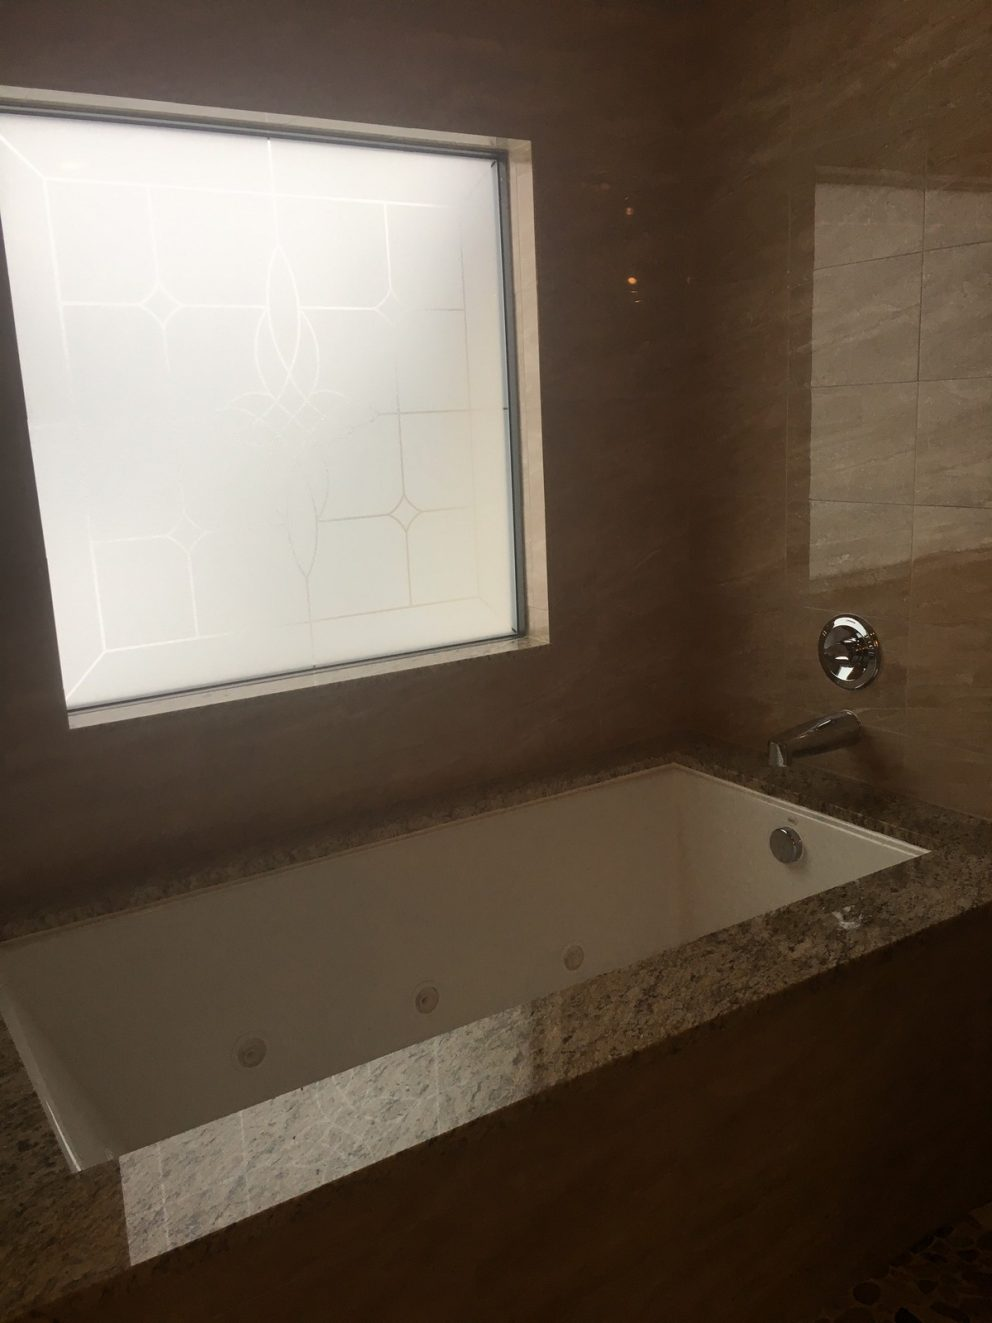 Undermount bathtub in master bath with frosted glass window